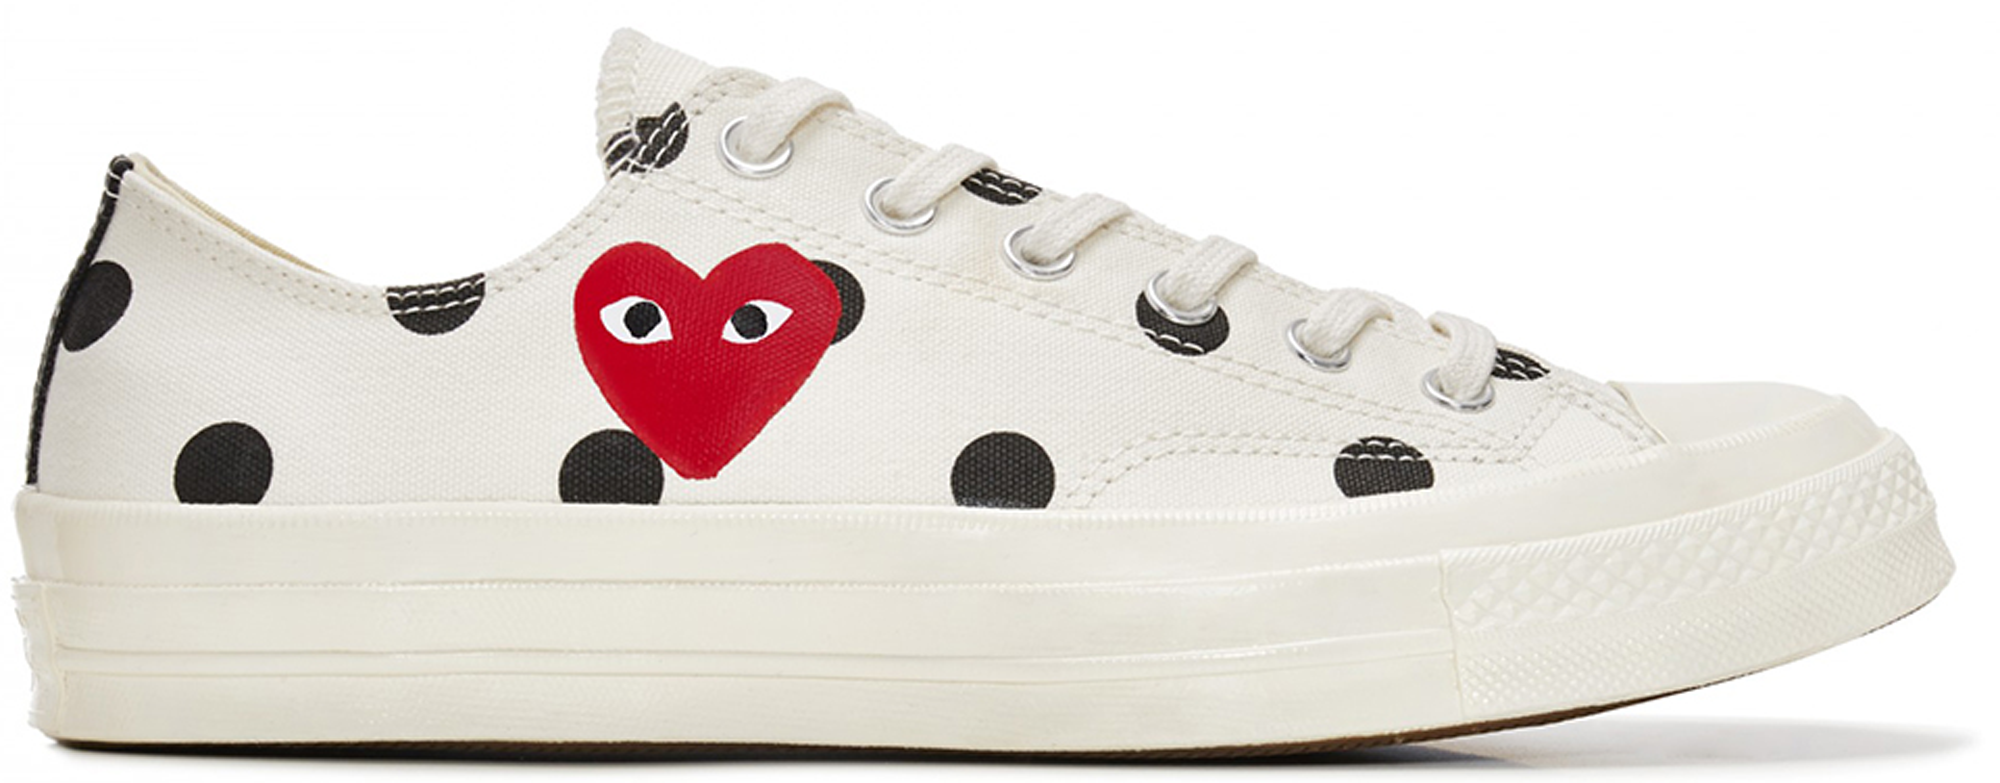 Converse Chuck Taylor All-Star 70s Ox Comme des Garcons Polka Dot White